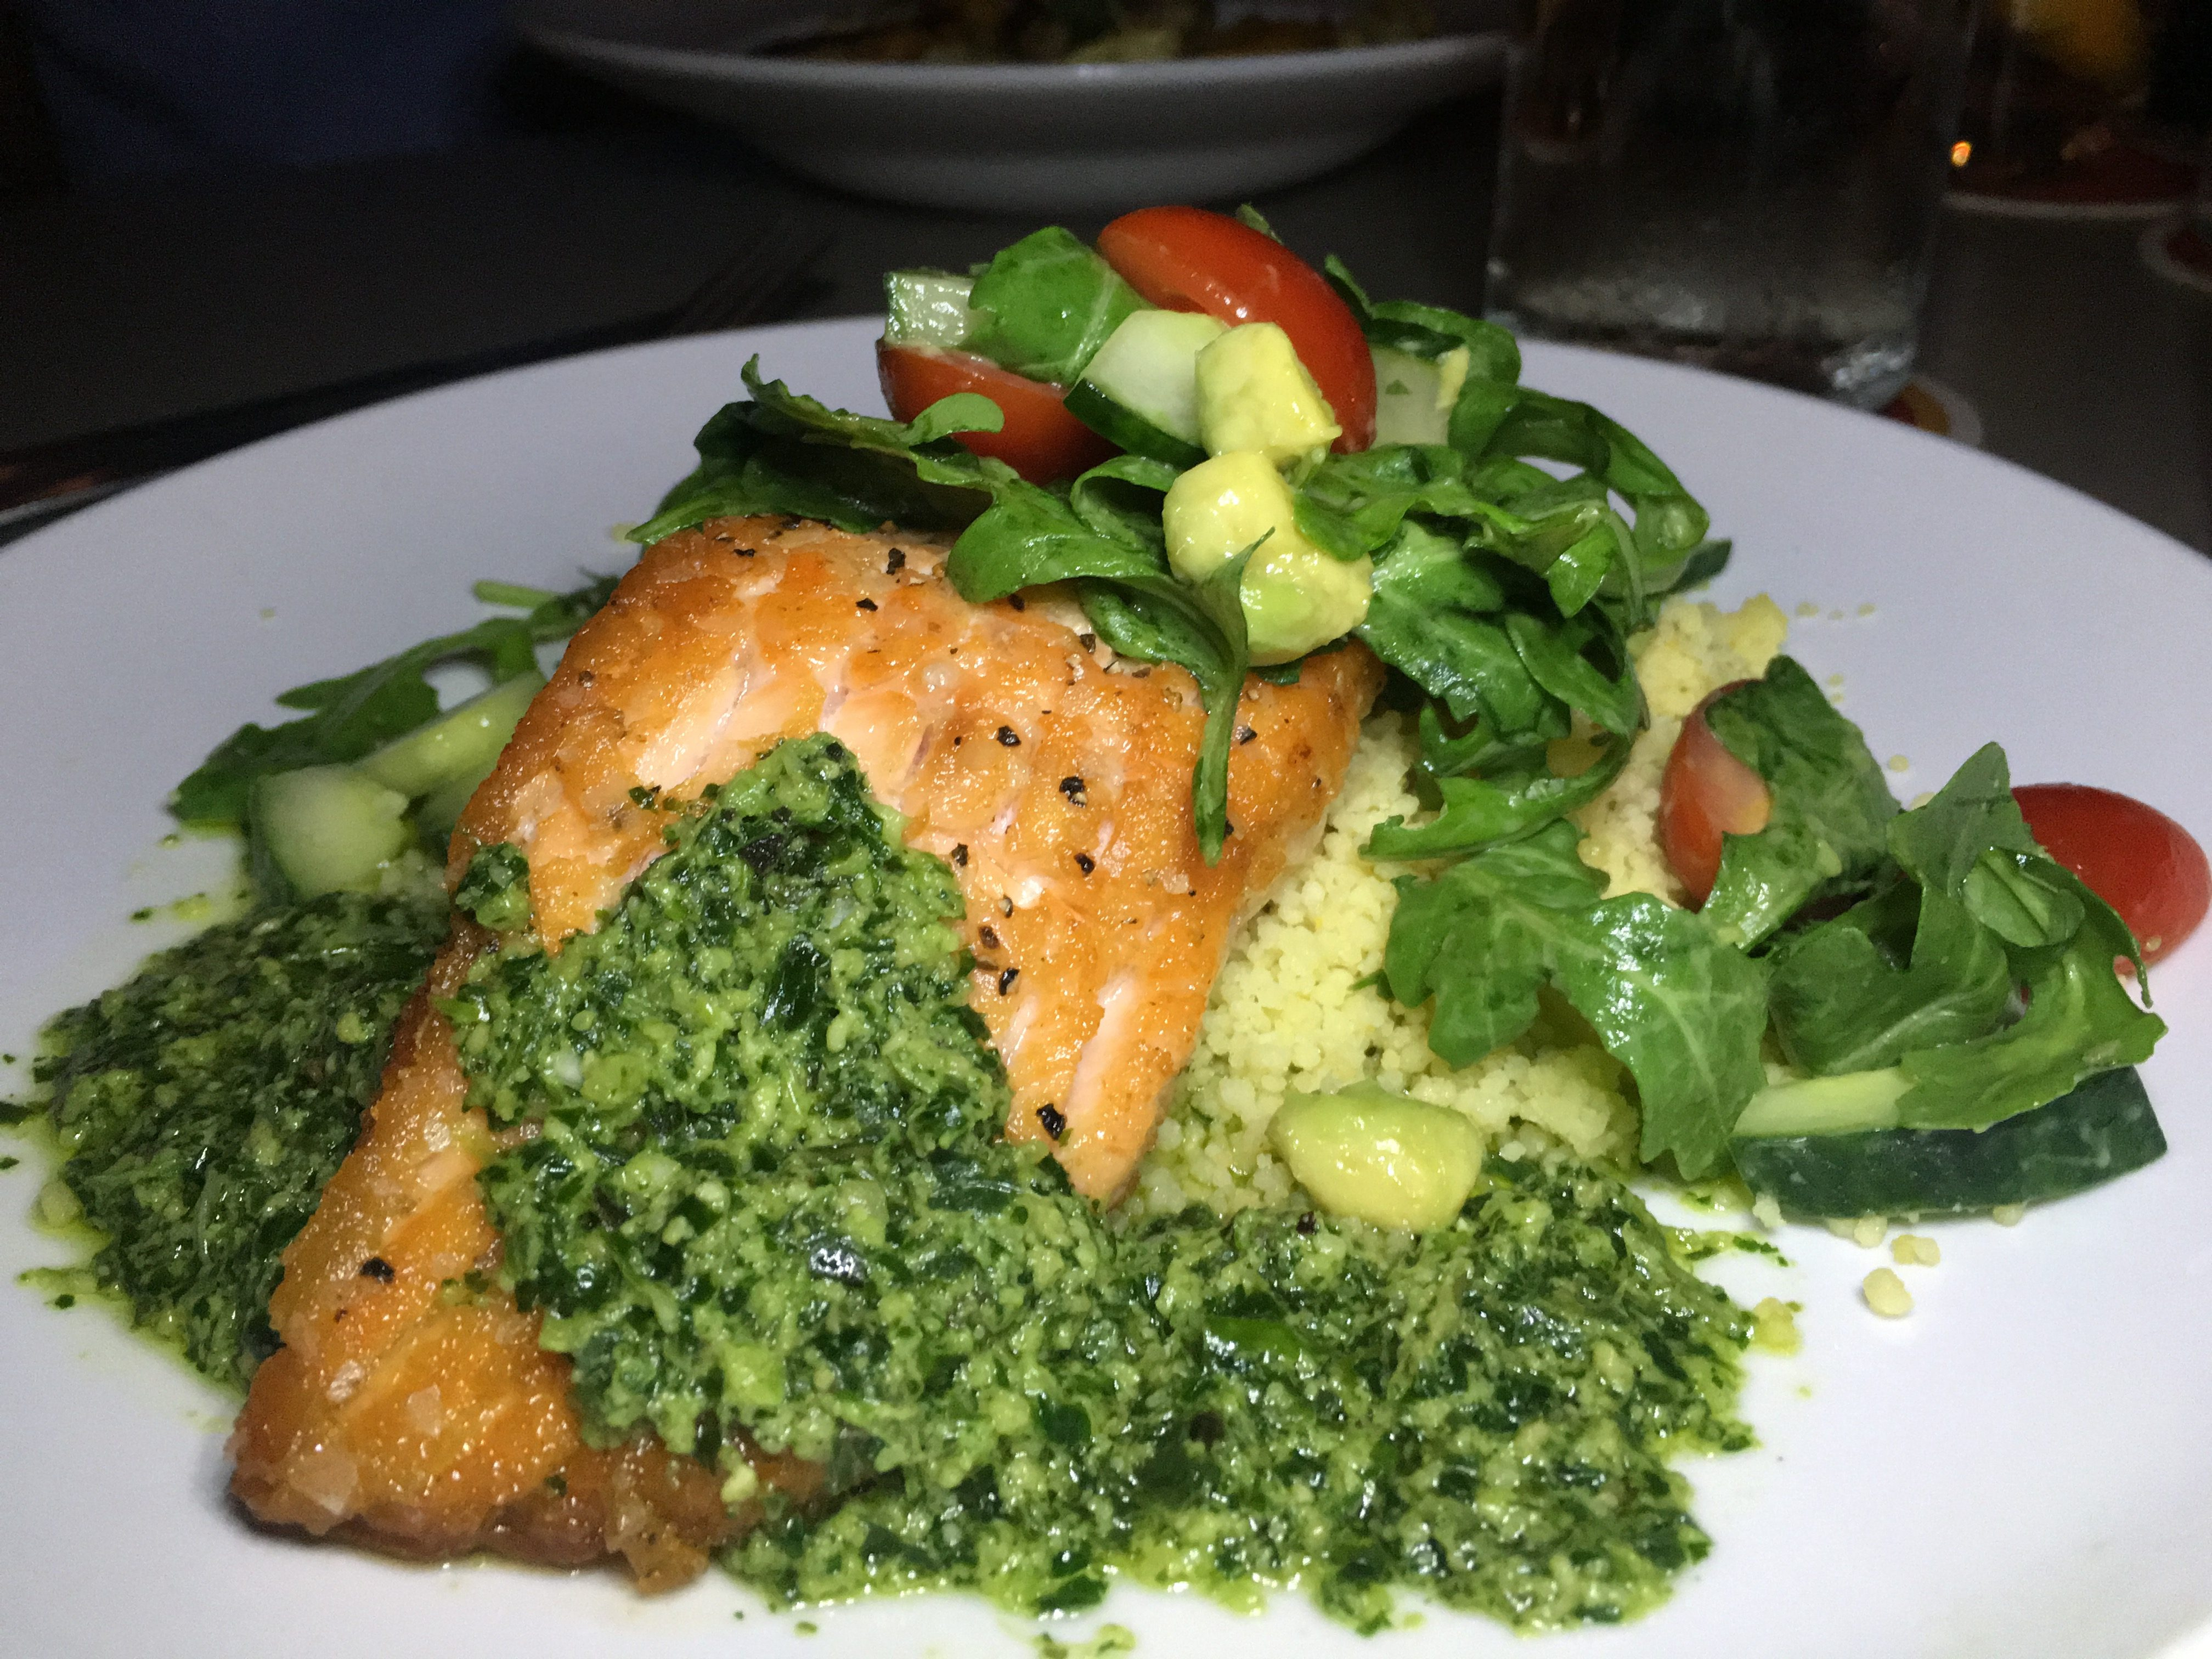 Lounge Here - Grilled Salmon - East Dallas - The GG List - Girls on Food Blog